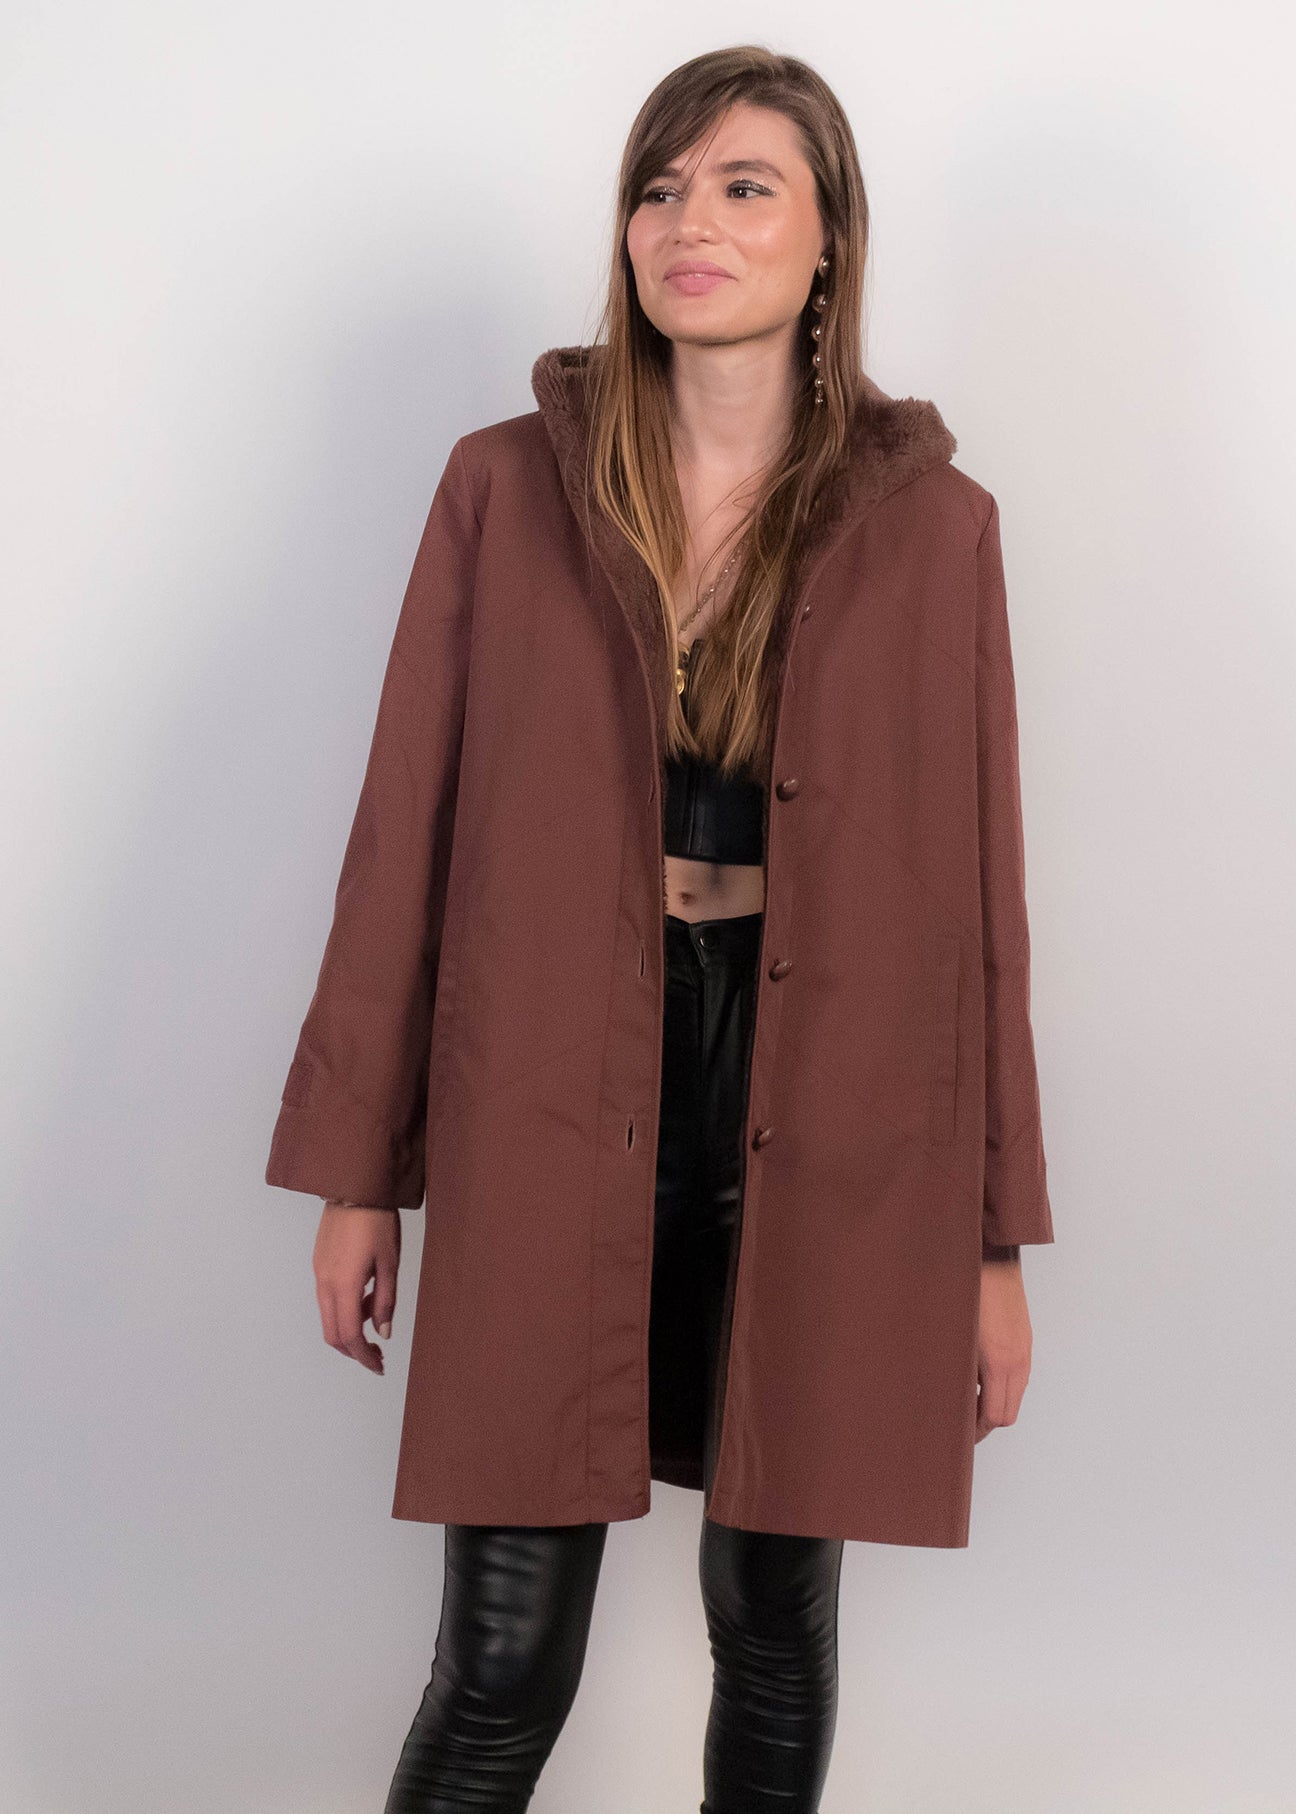 70s Faux Sherpa Lined Coat